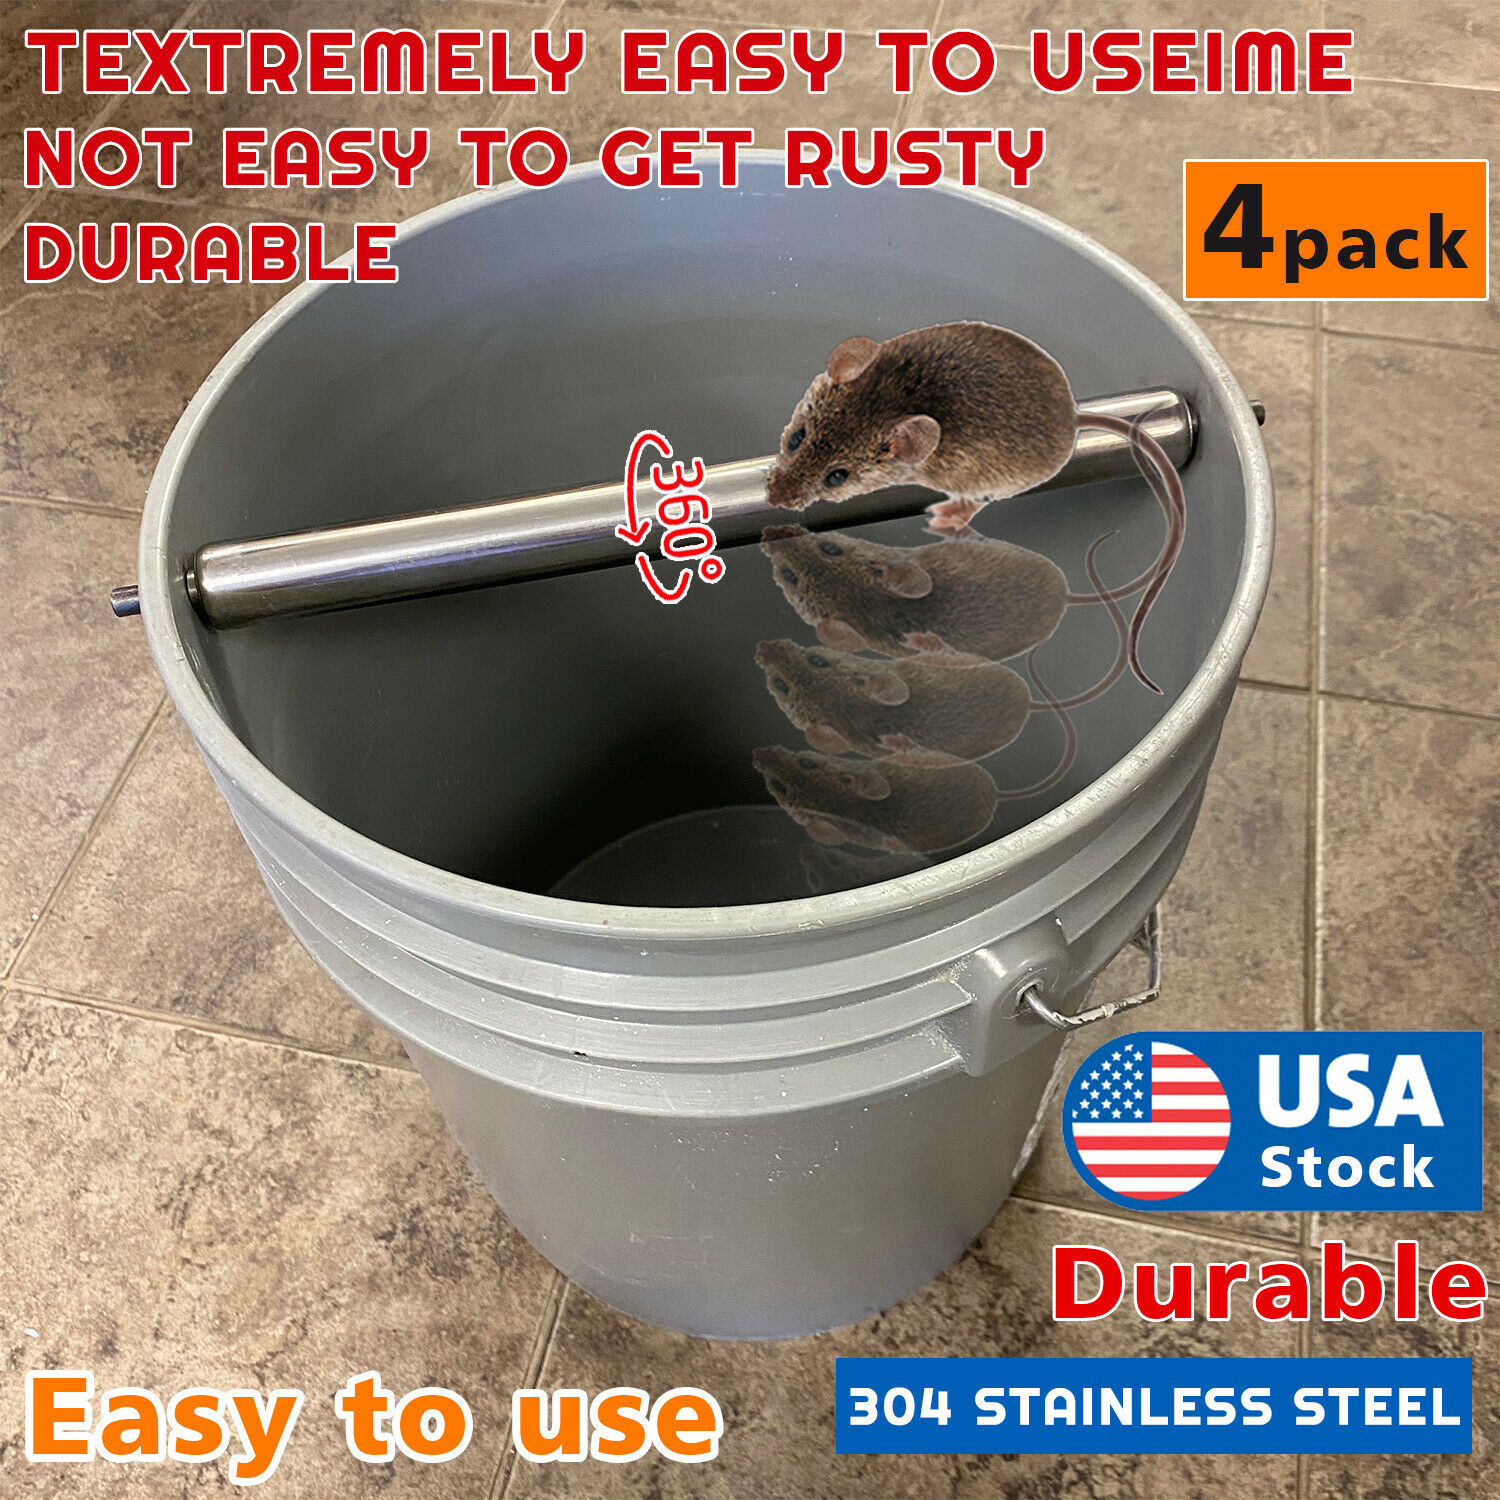 4PCAK Mice Rats Mouse killer Roll Trap log Grasp Bucket Rolling Roller USA Animal & Rodent Control